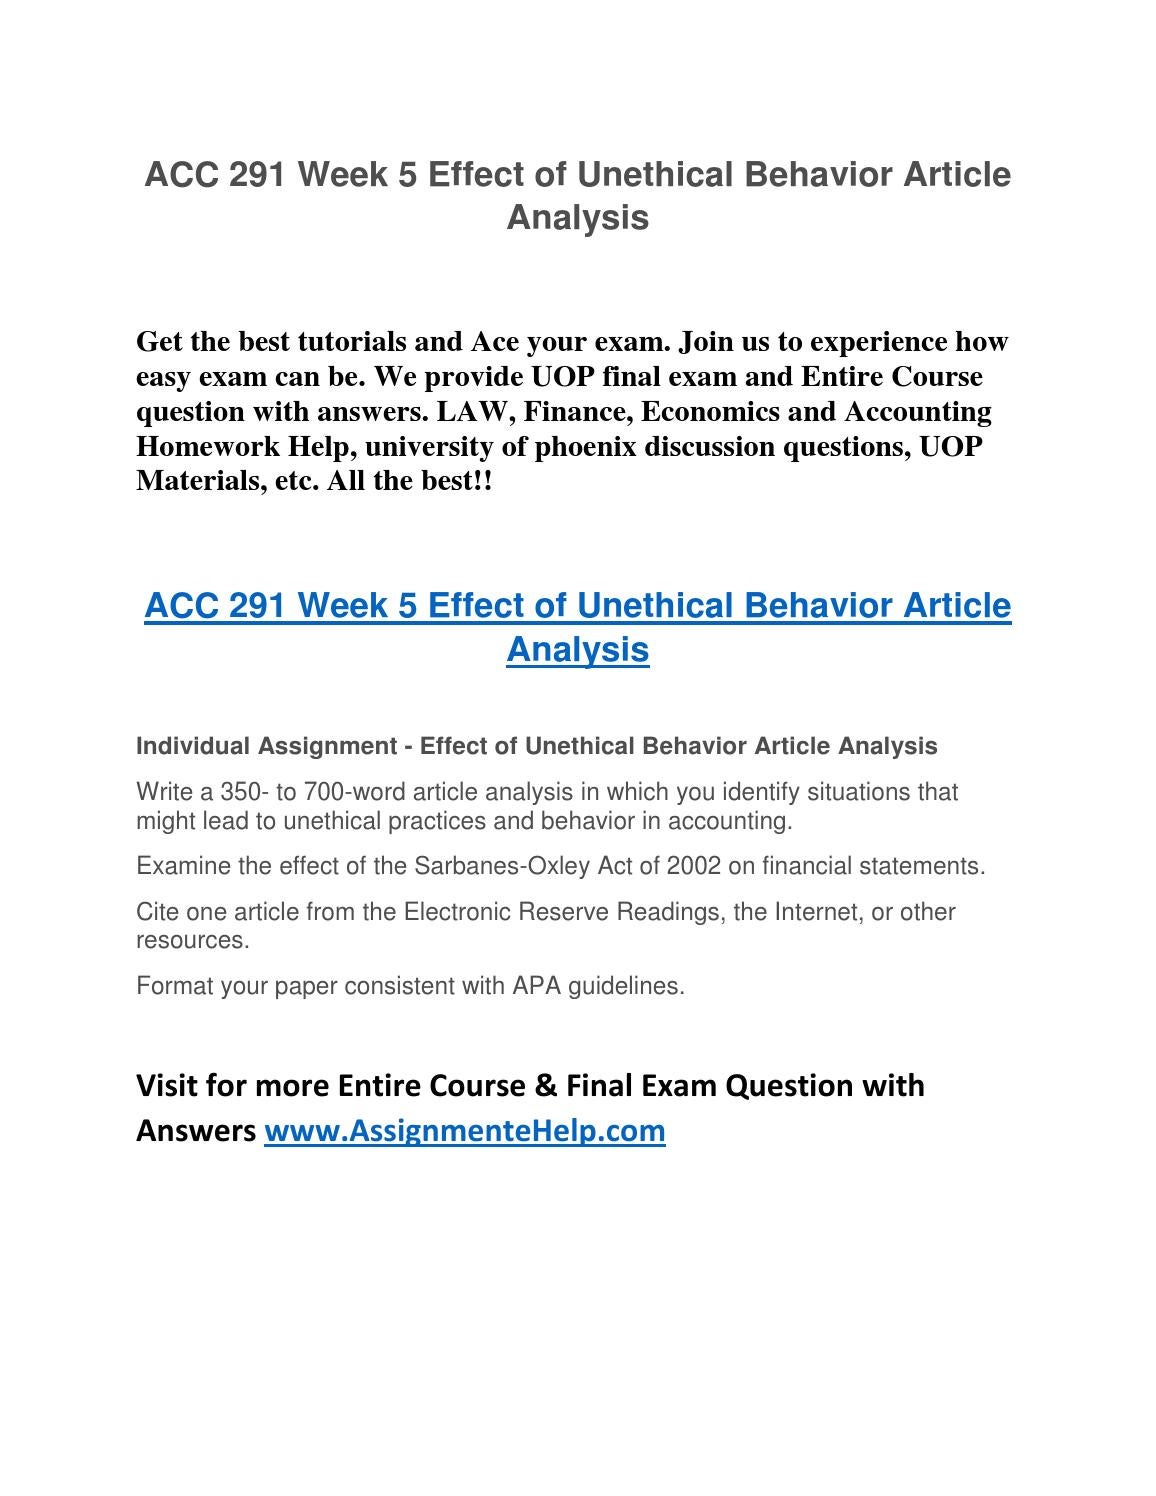 ACC 291 Week 5 Effect of Unethical Behavior Article UOP